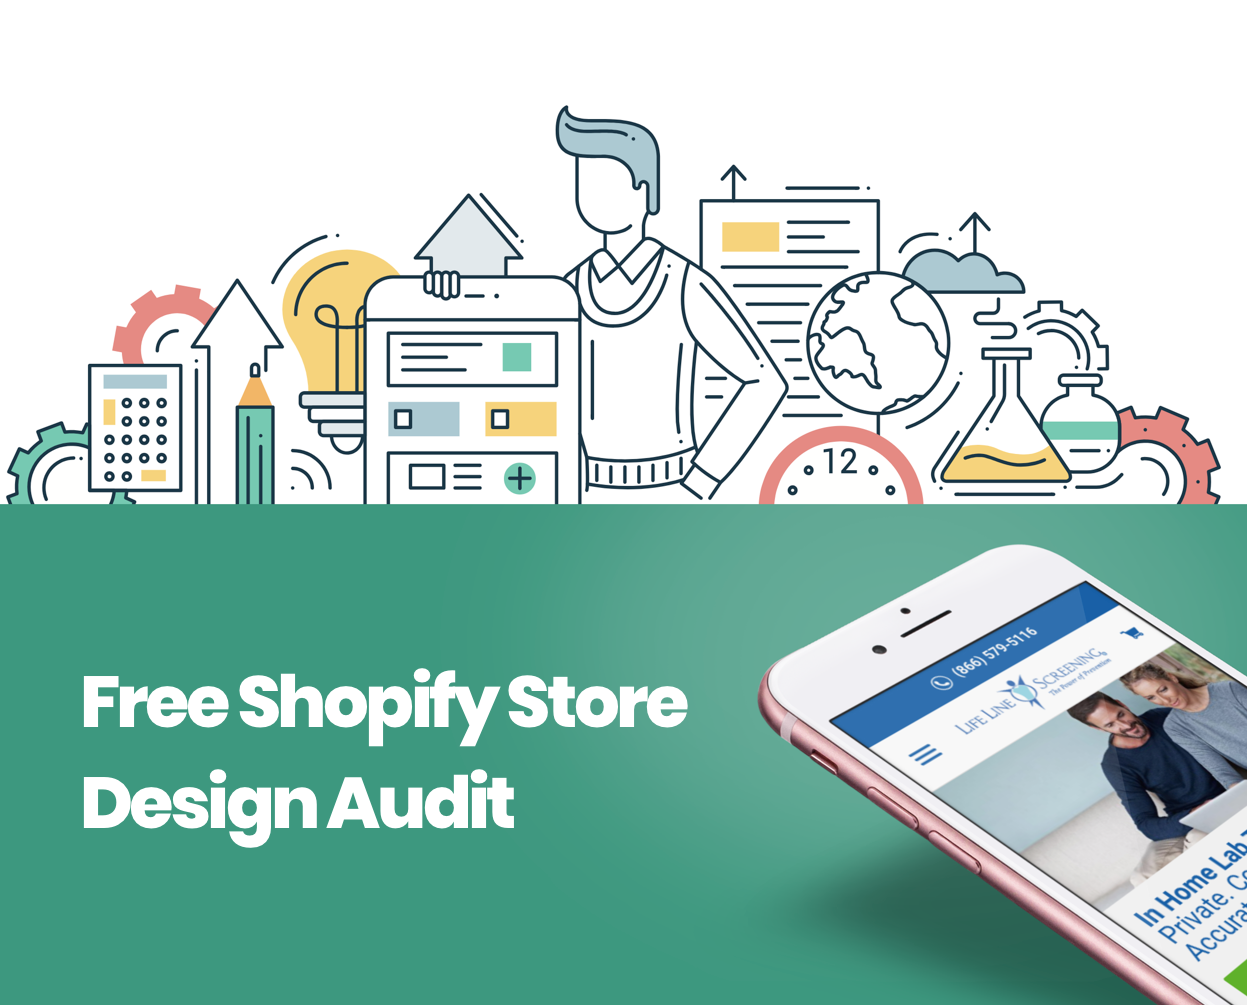 Free Shopify Store Design Audit